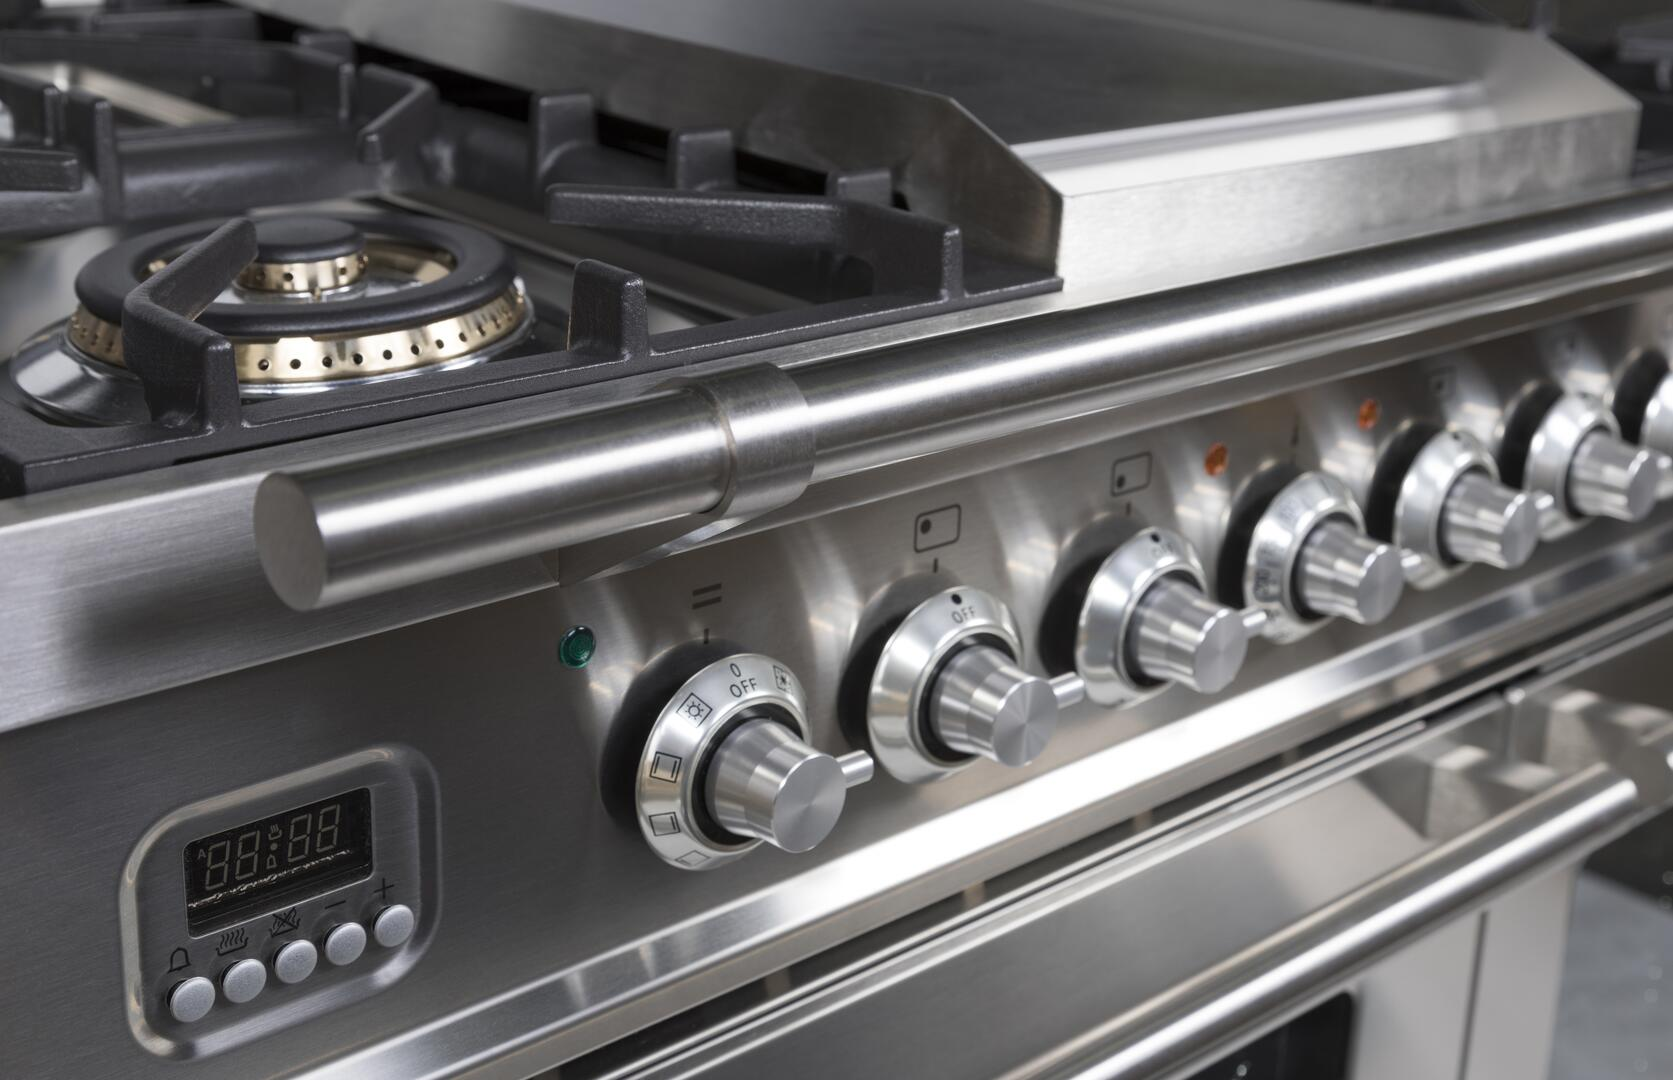 Ilve Professional Plus UPDW90FDMPI Freestanding Dual Fuel Range Stainless Steel, Knobs View